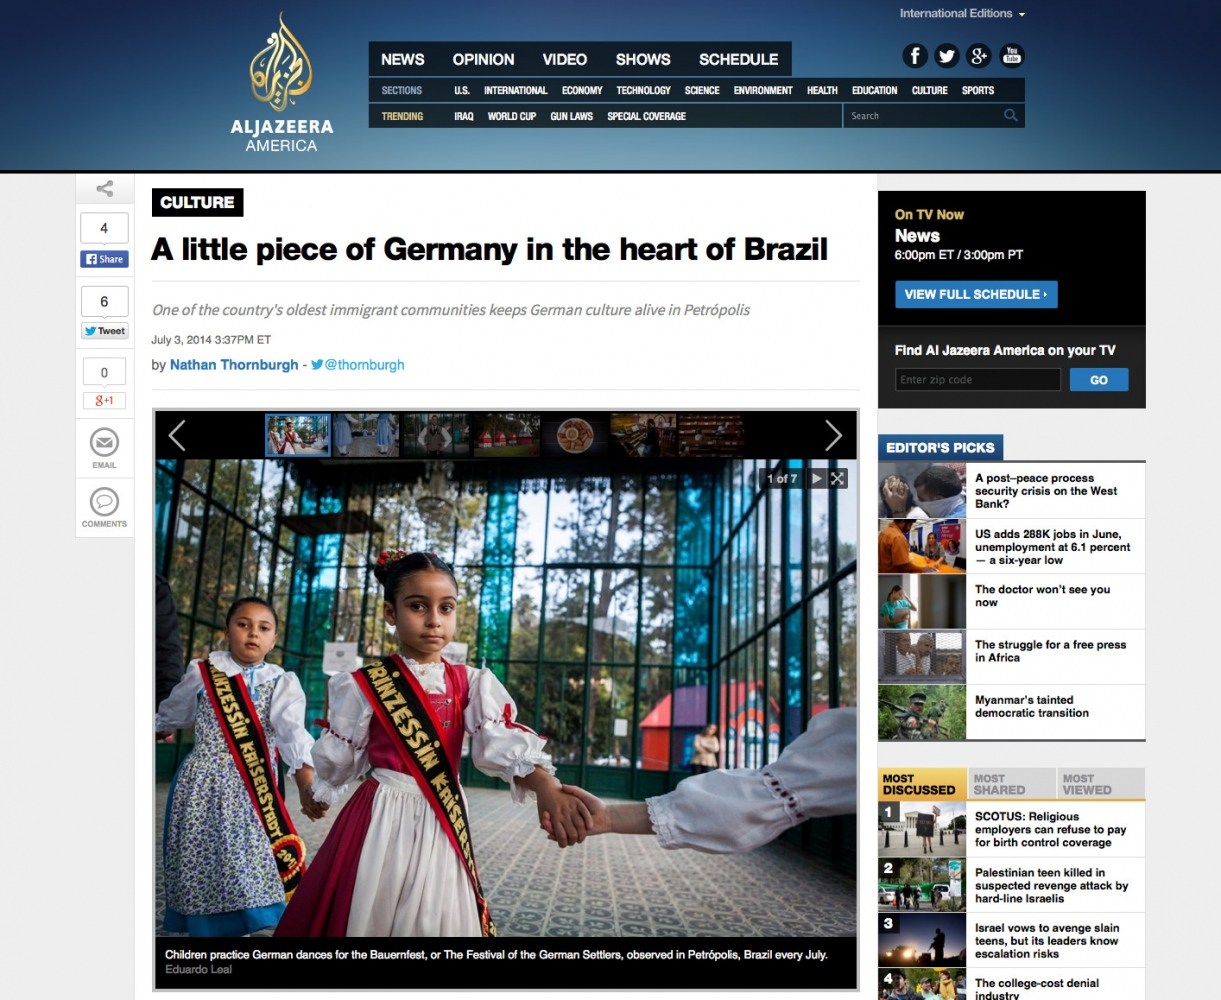 Art and Documentary Photography - Loading A_little_piece_of_Germany_in_the_heart_of_Brazil___Al_Jazeera_America_2014-07-03_23-34-40.jpeg